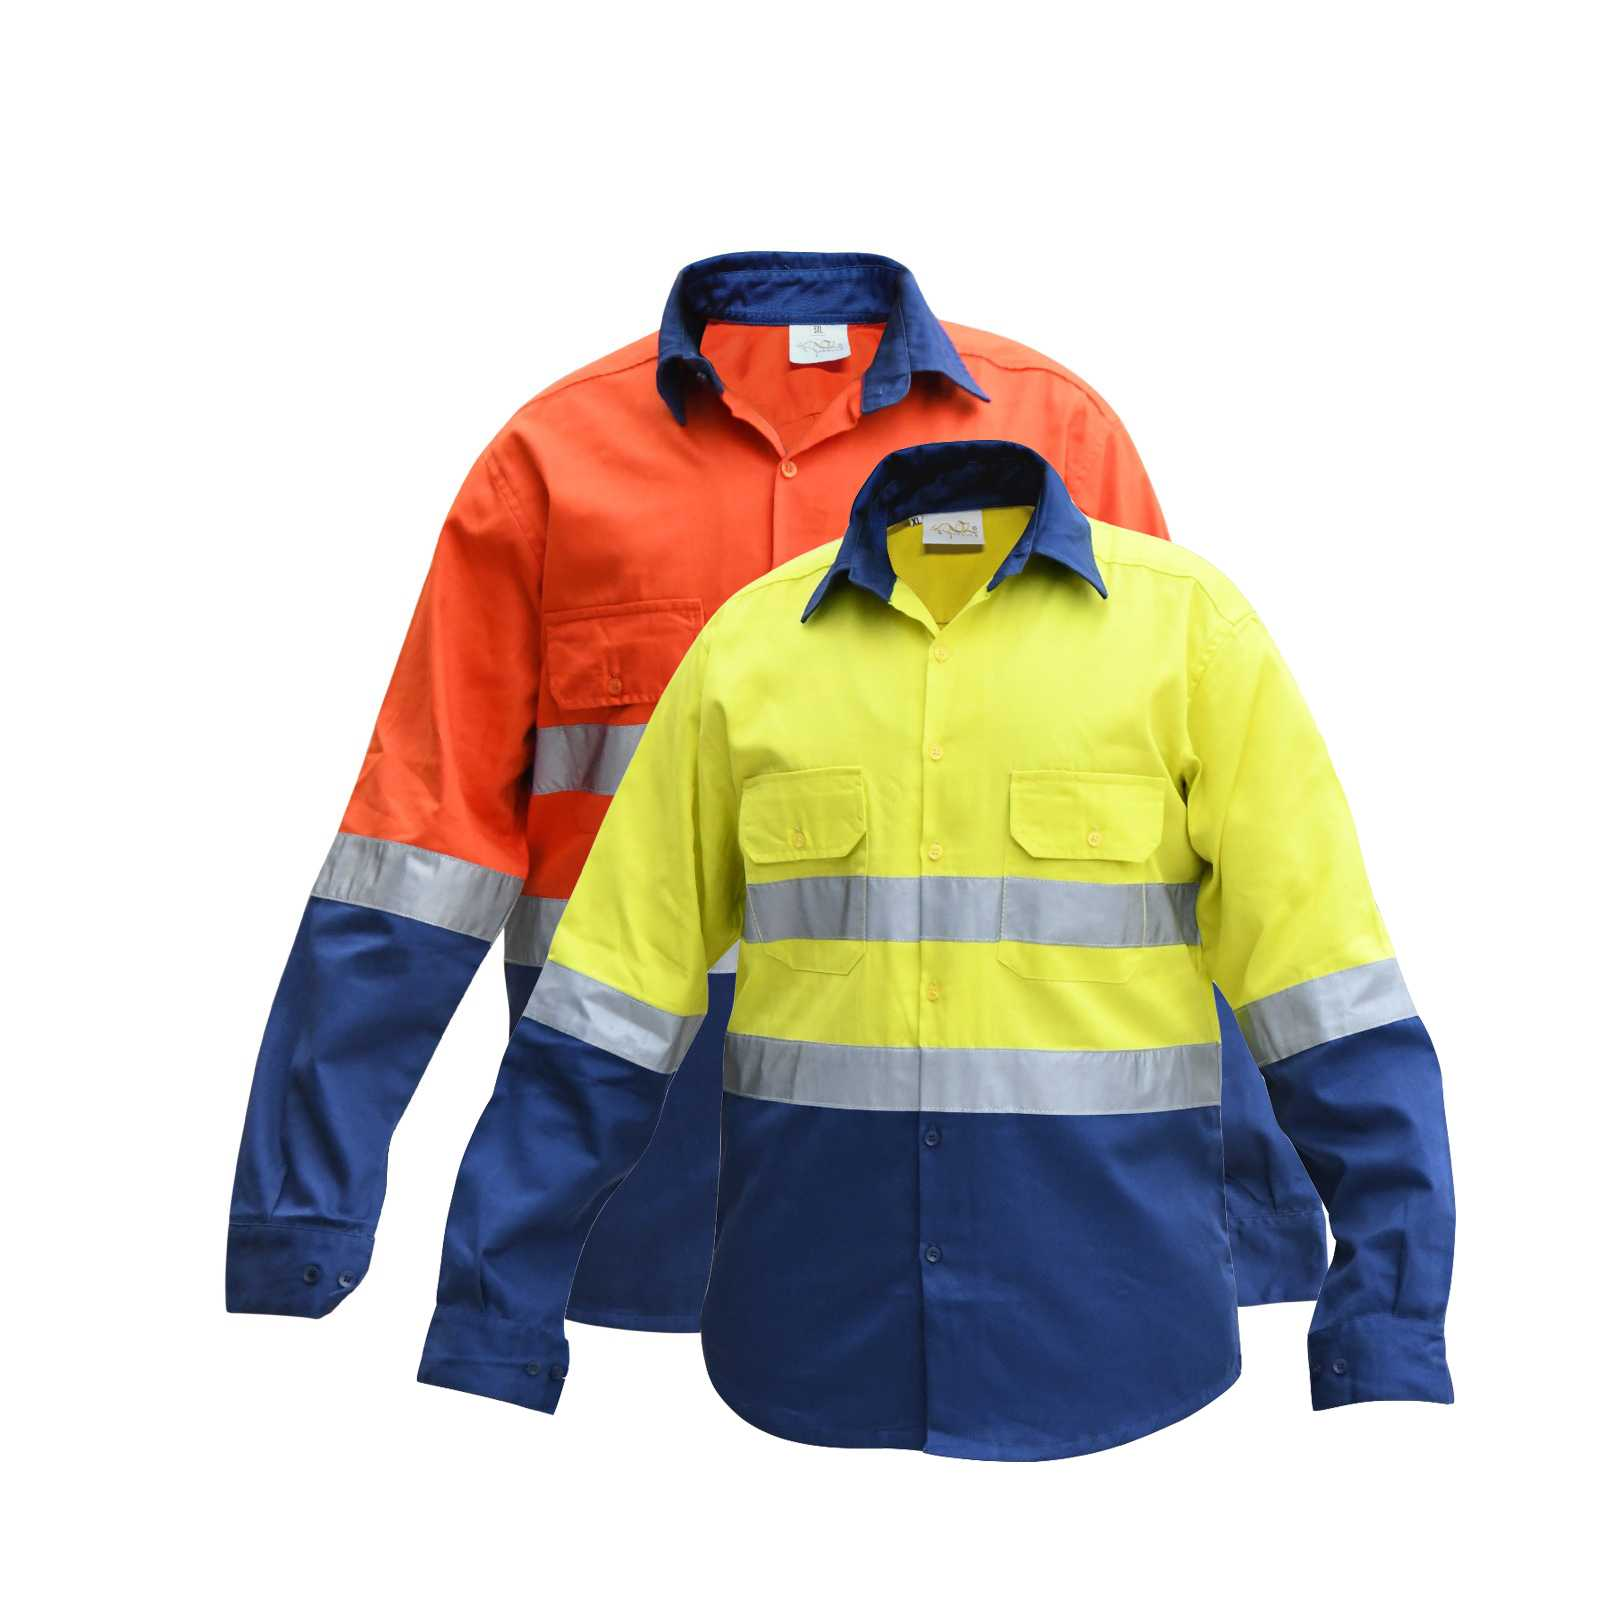 Premium Quality HI VIS OZ ARMOUR Work Shirts Super Heavy Duty Full Sleeves